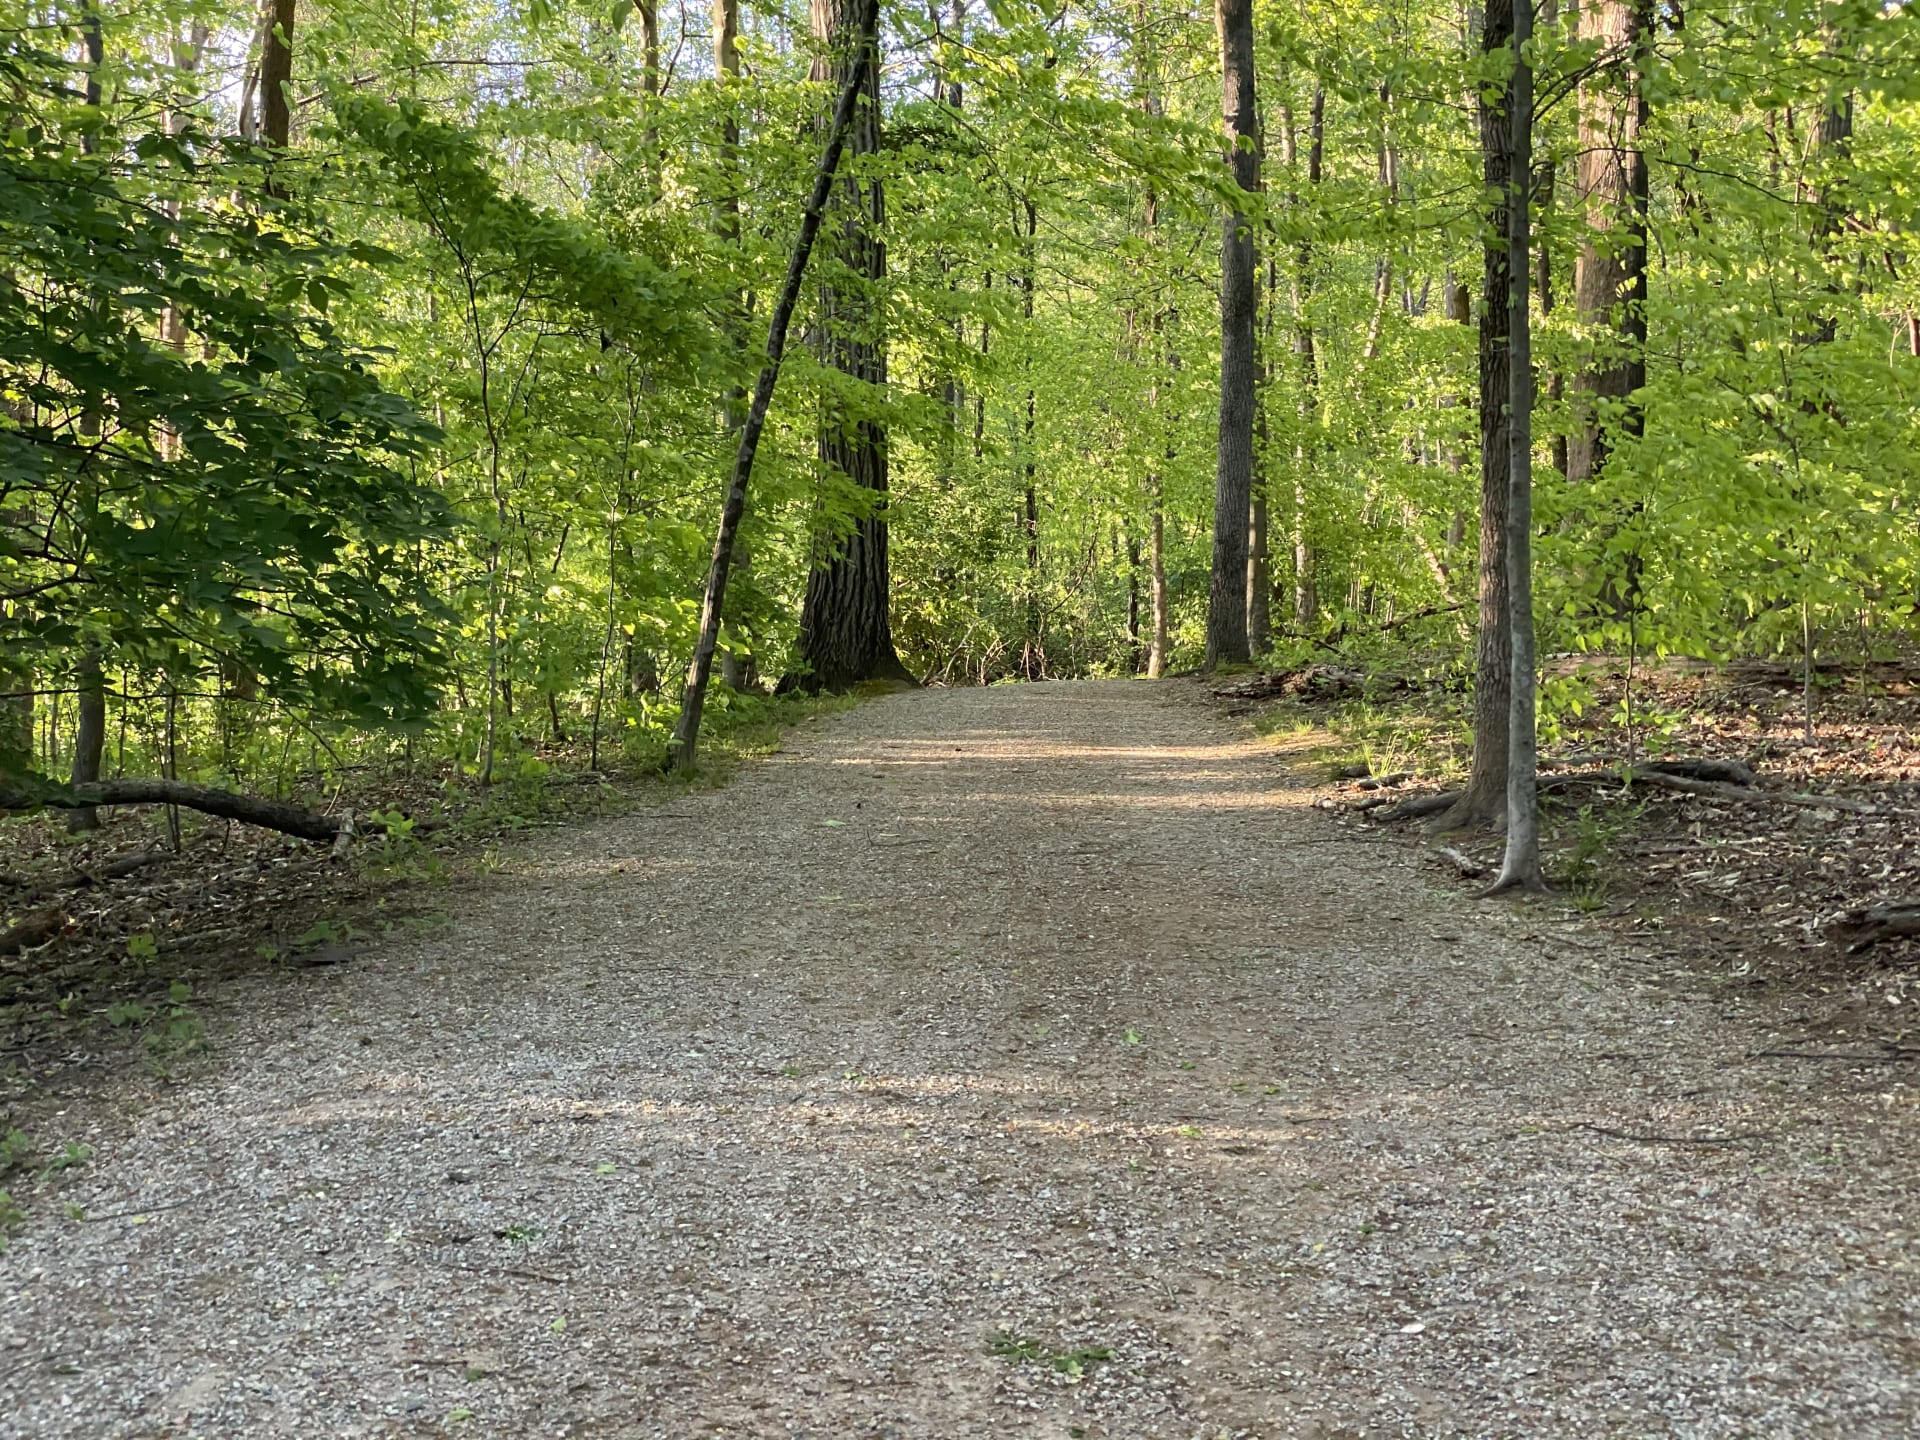 gravel trail in a wooded park